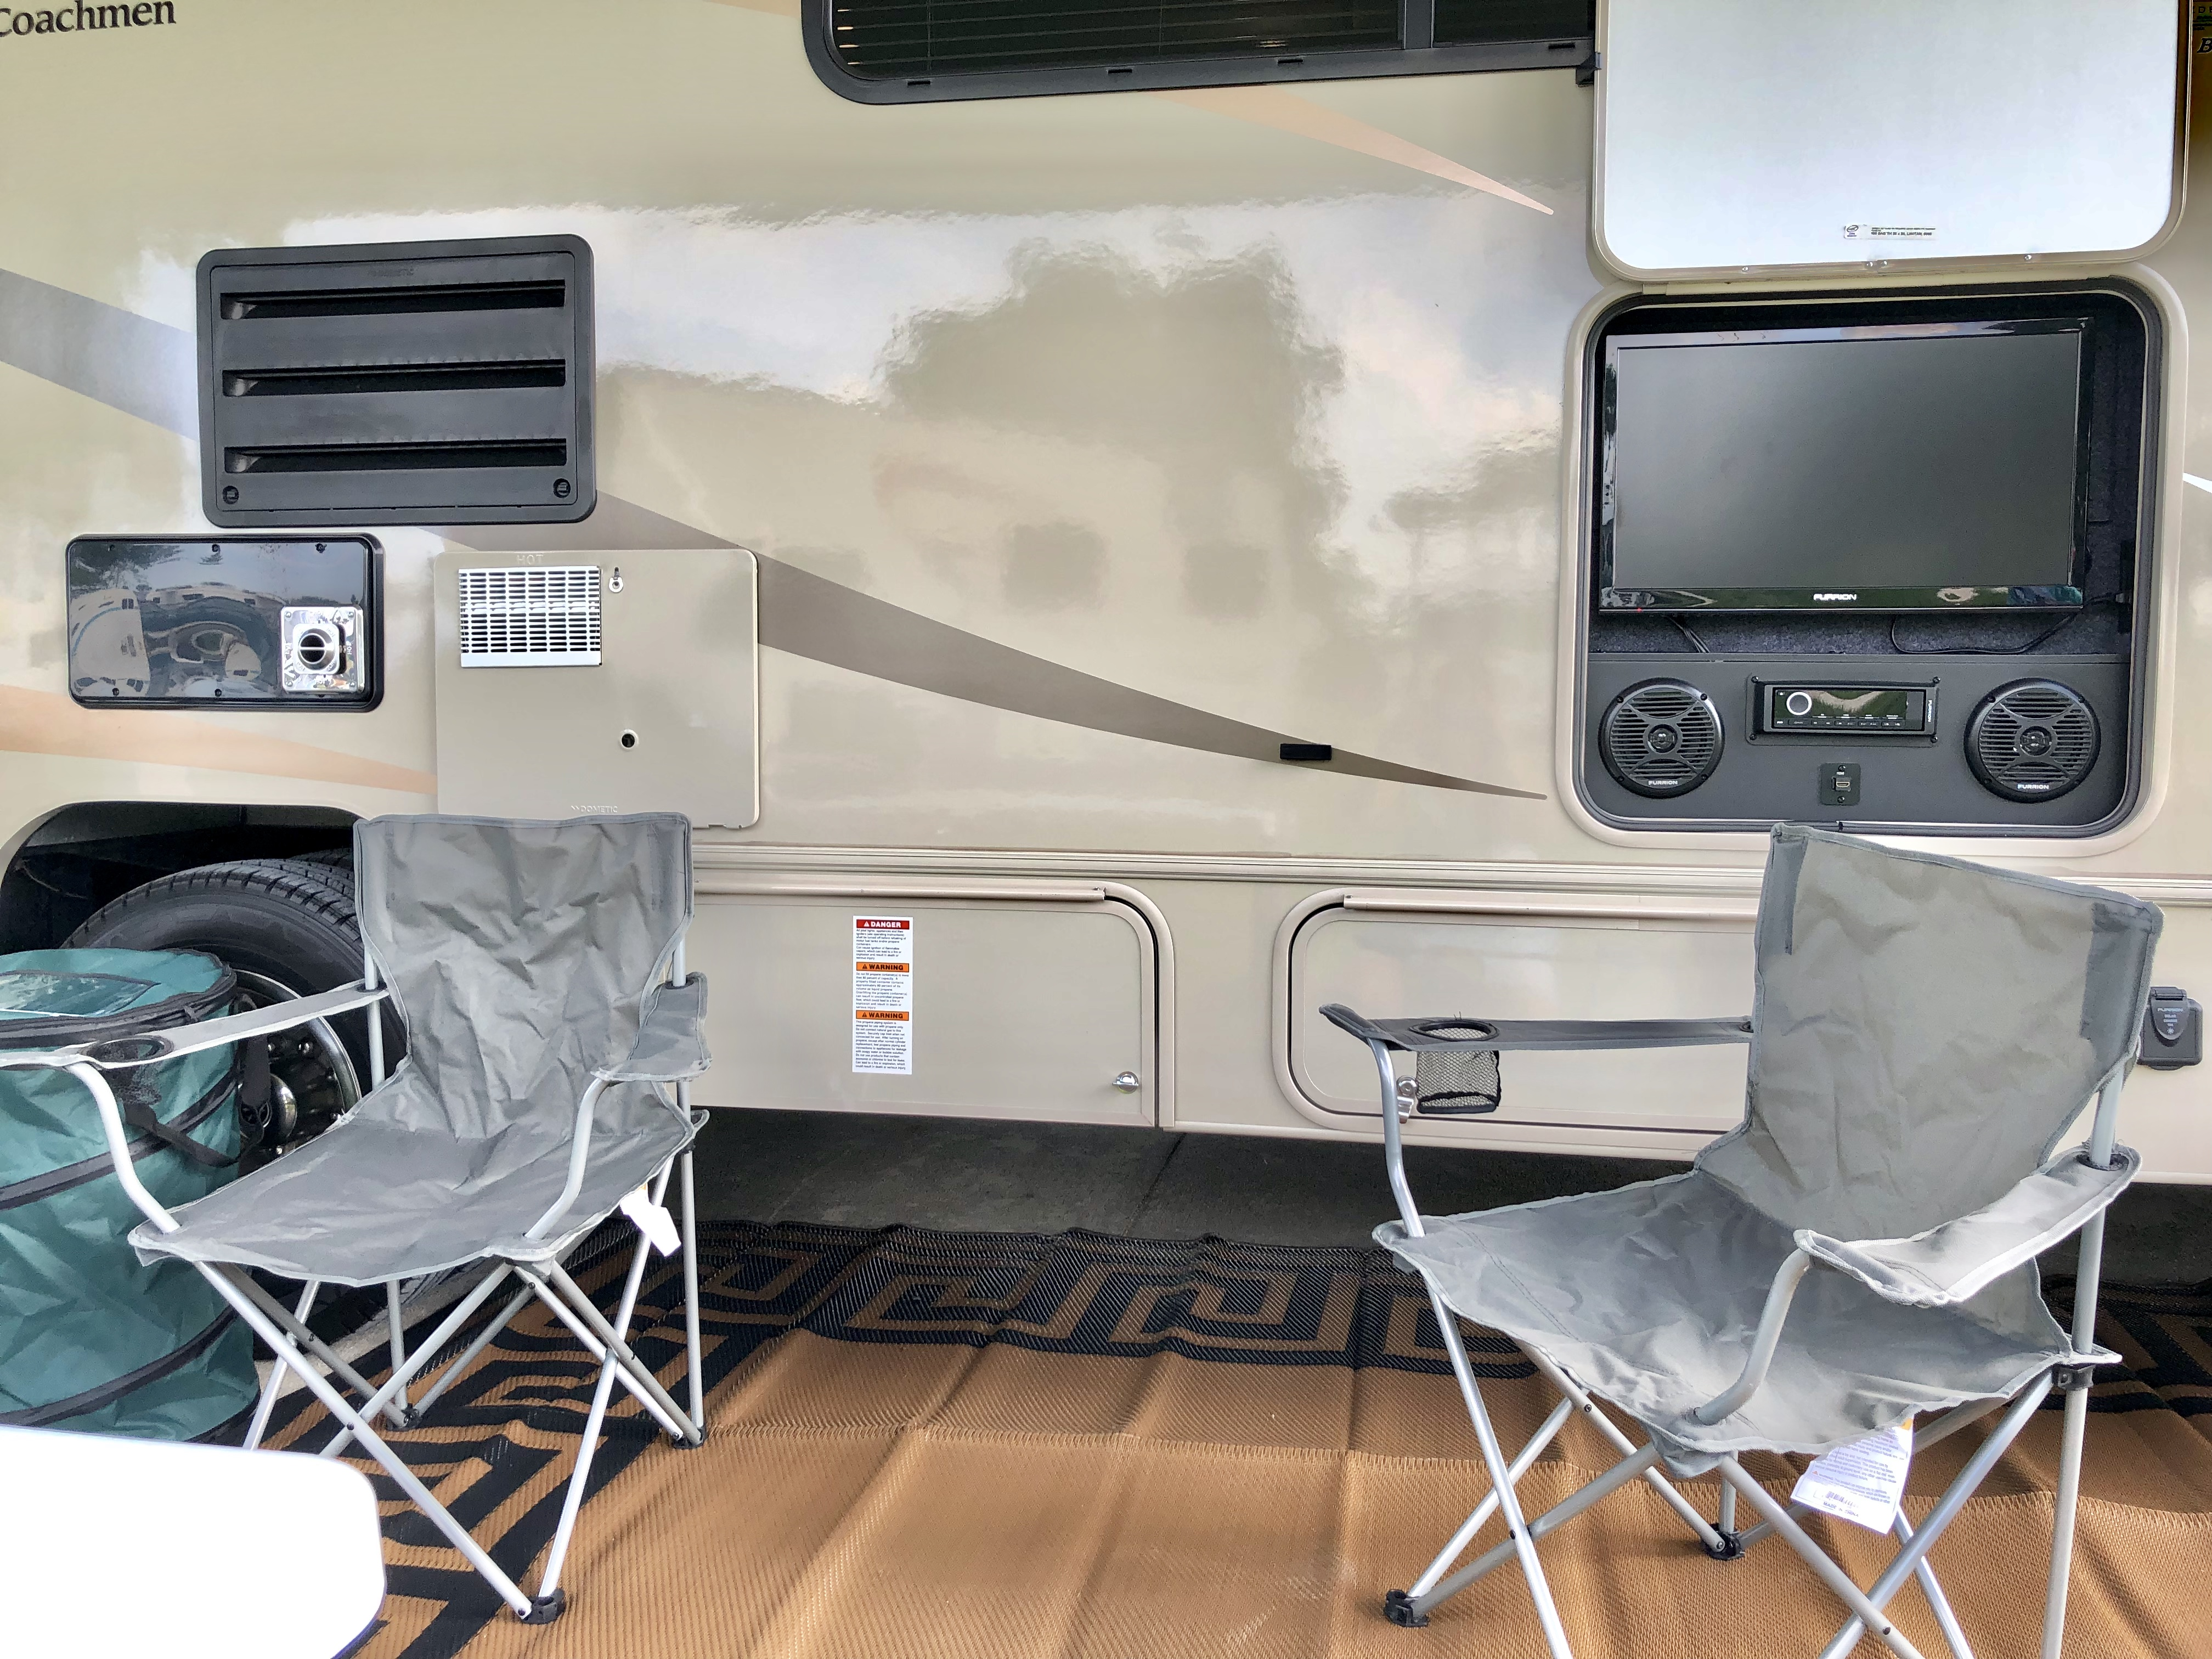 8 camping chairs provided, outdoor tv/sound system. Coachmen Leprechaun 2019